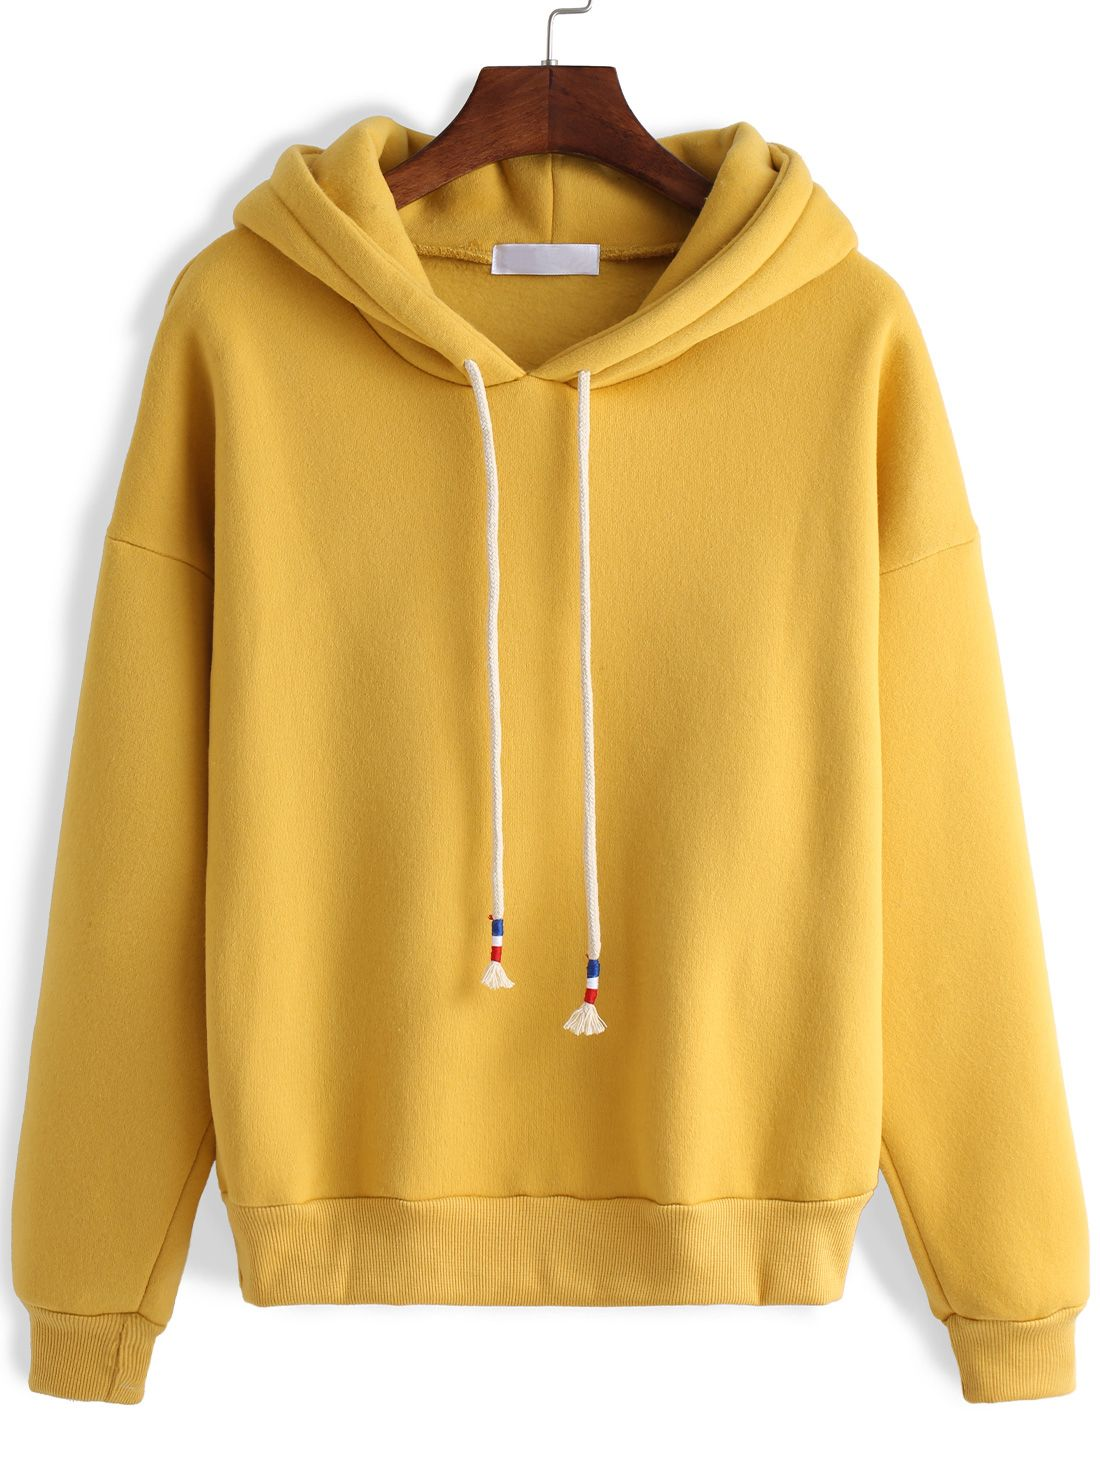 Hooded Zipper Loose Yellow Sweatshirt | Sweatshirt, Clothes and ...